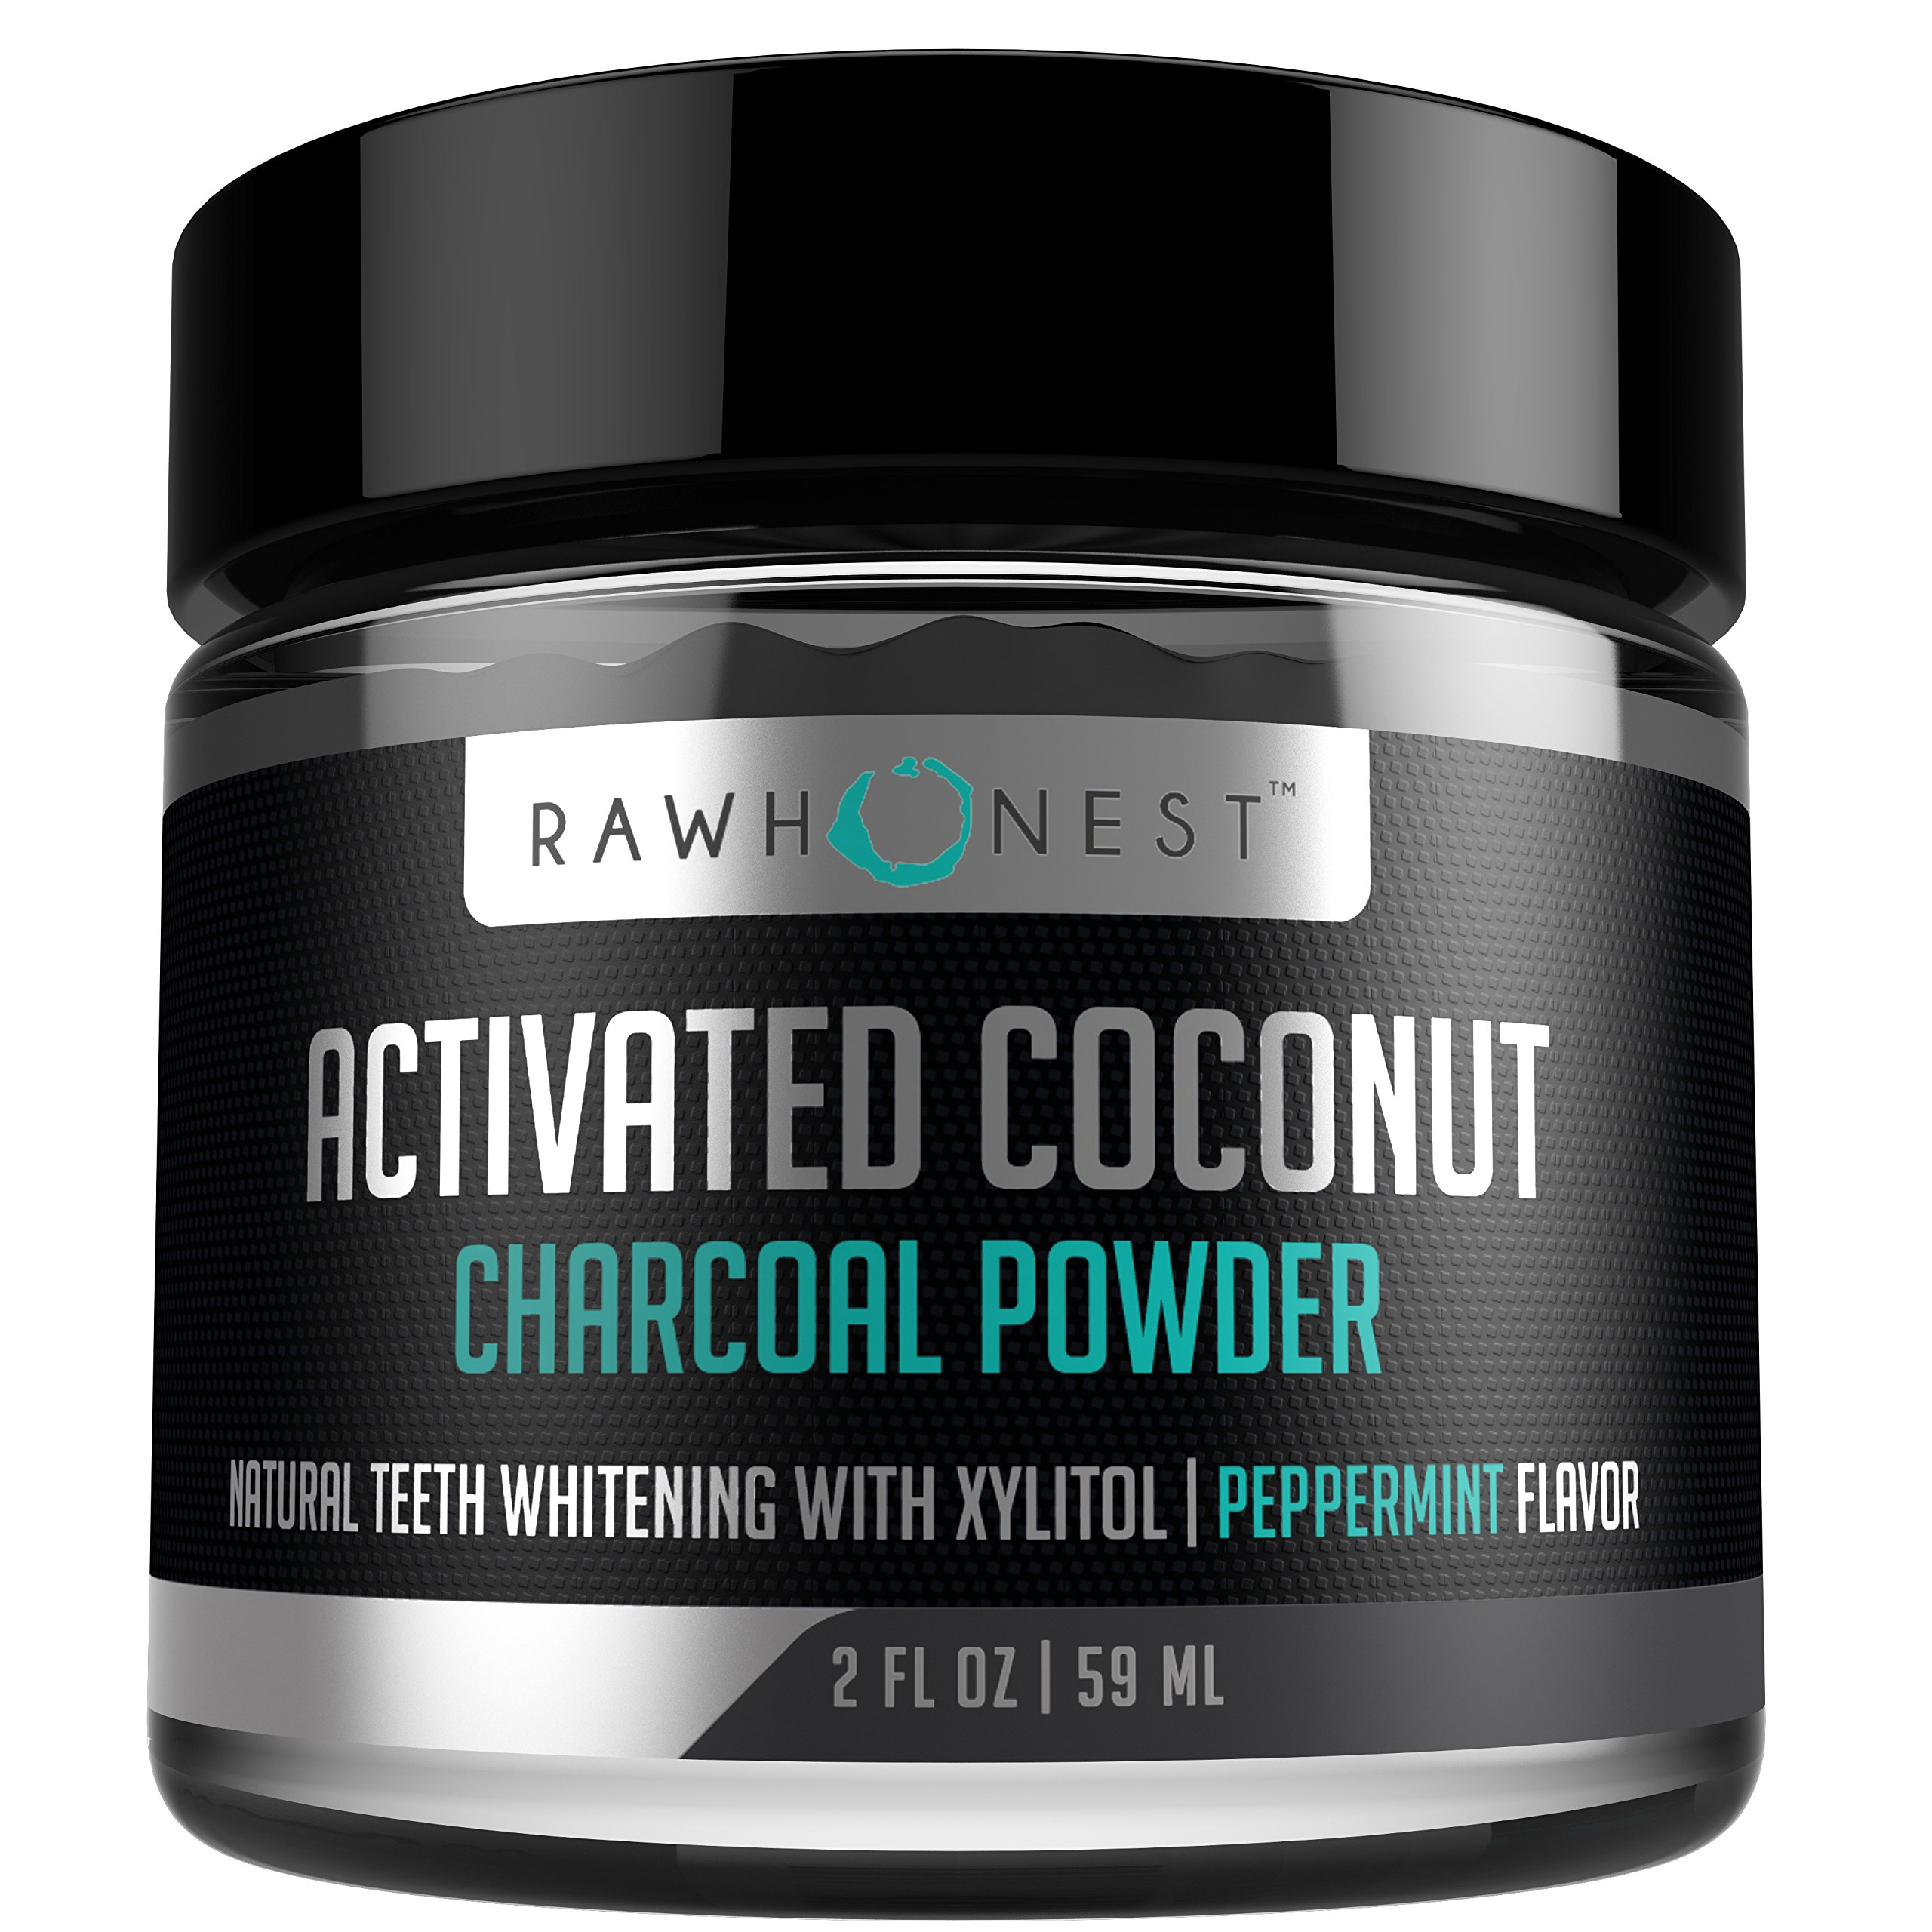 Teeth Whitening - Activated Charcoal Powder With Coconut And Xylitol - 100% Natural & Effective, Removes Stains & Promotes Oral Hygiene, Made in USA, Peppermint